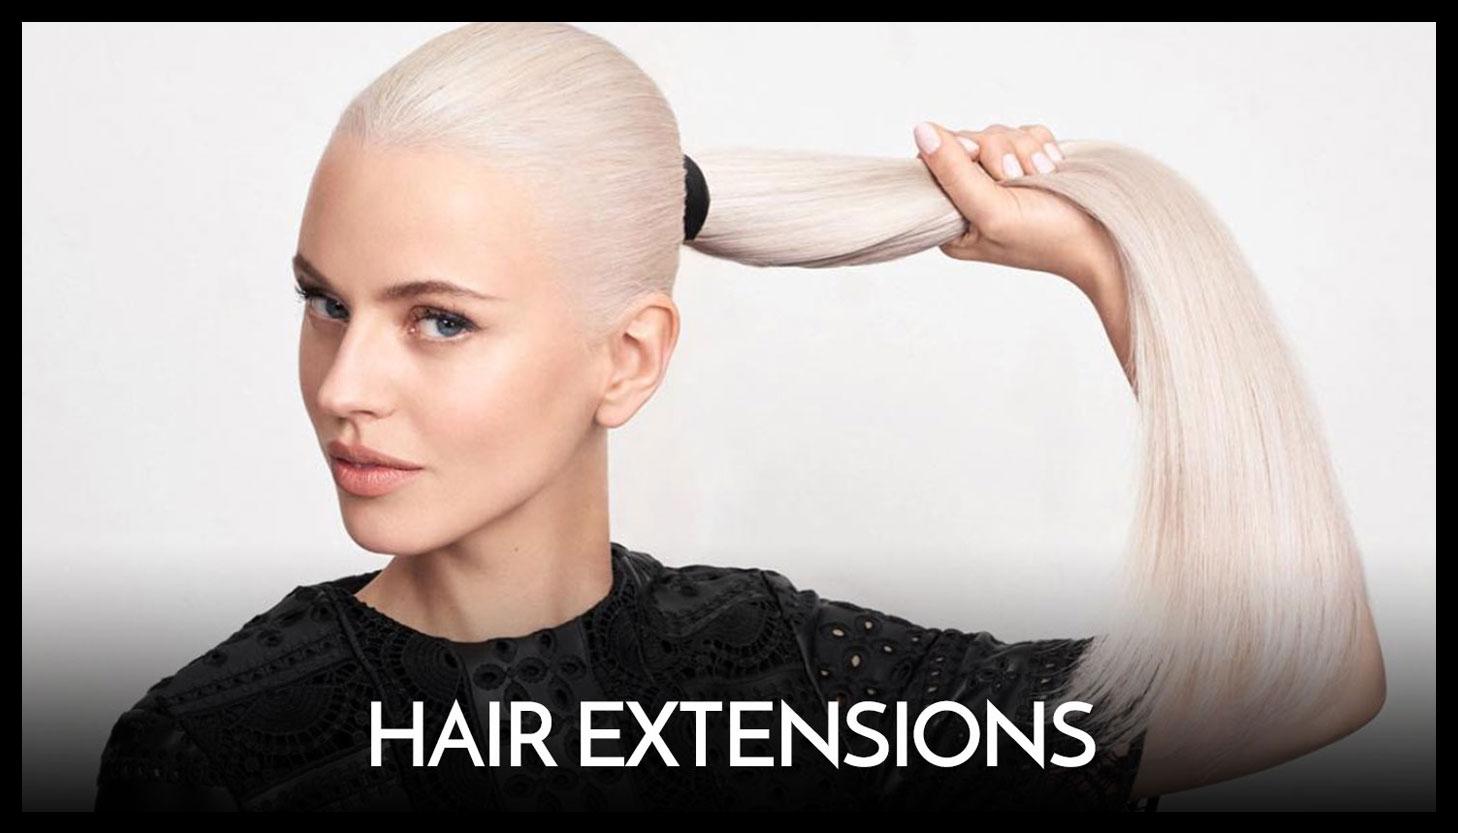 hair-extensions-hover